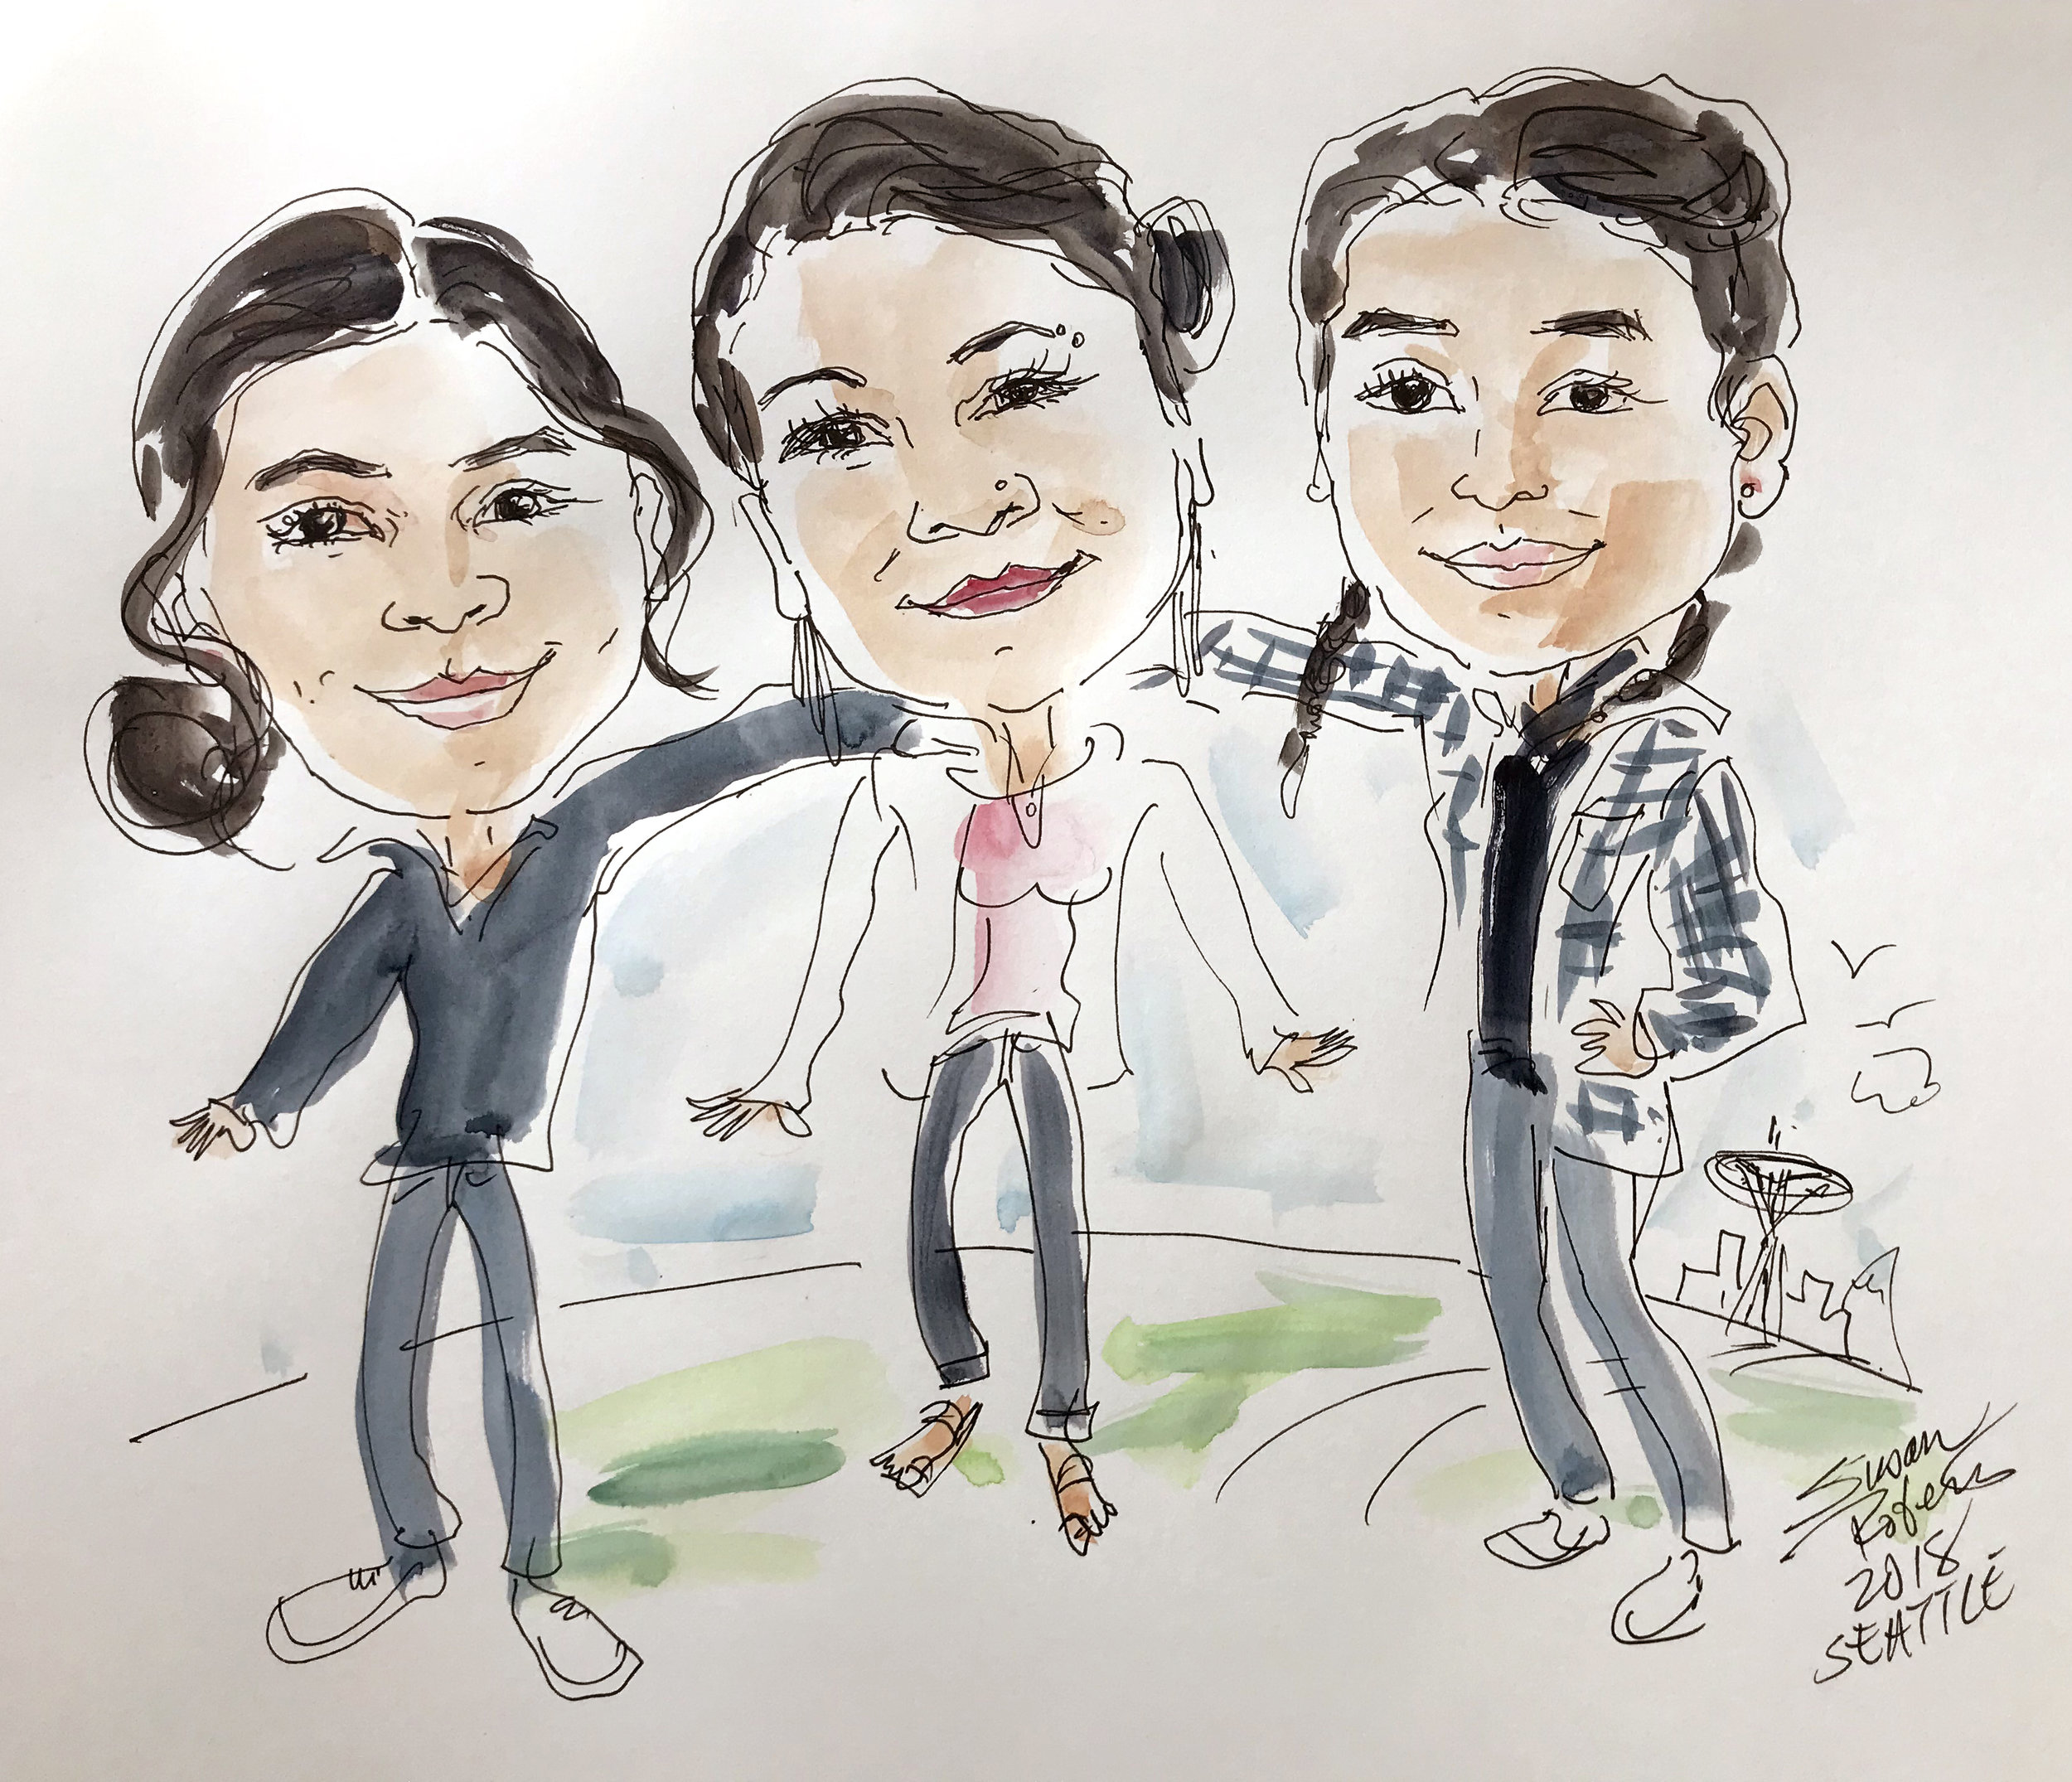 Group caricature with watercolor wash